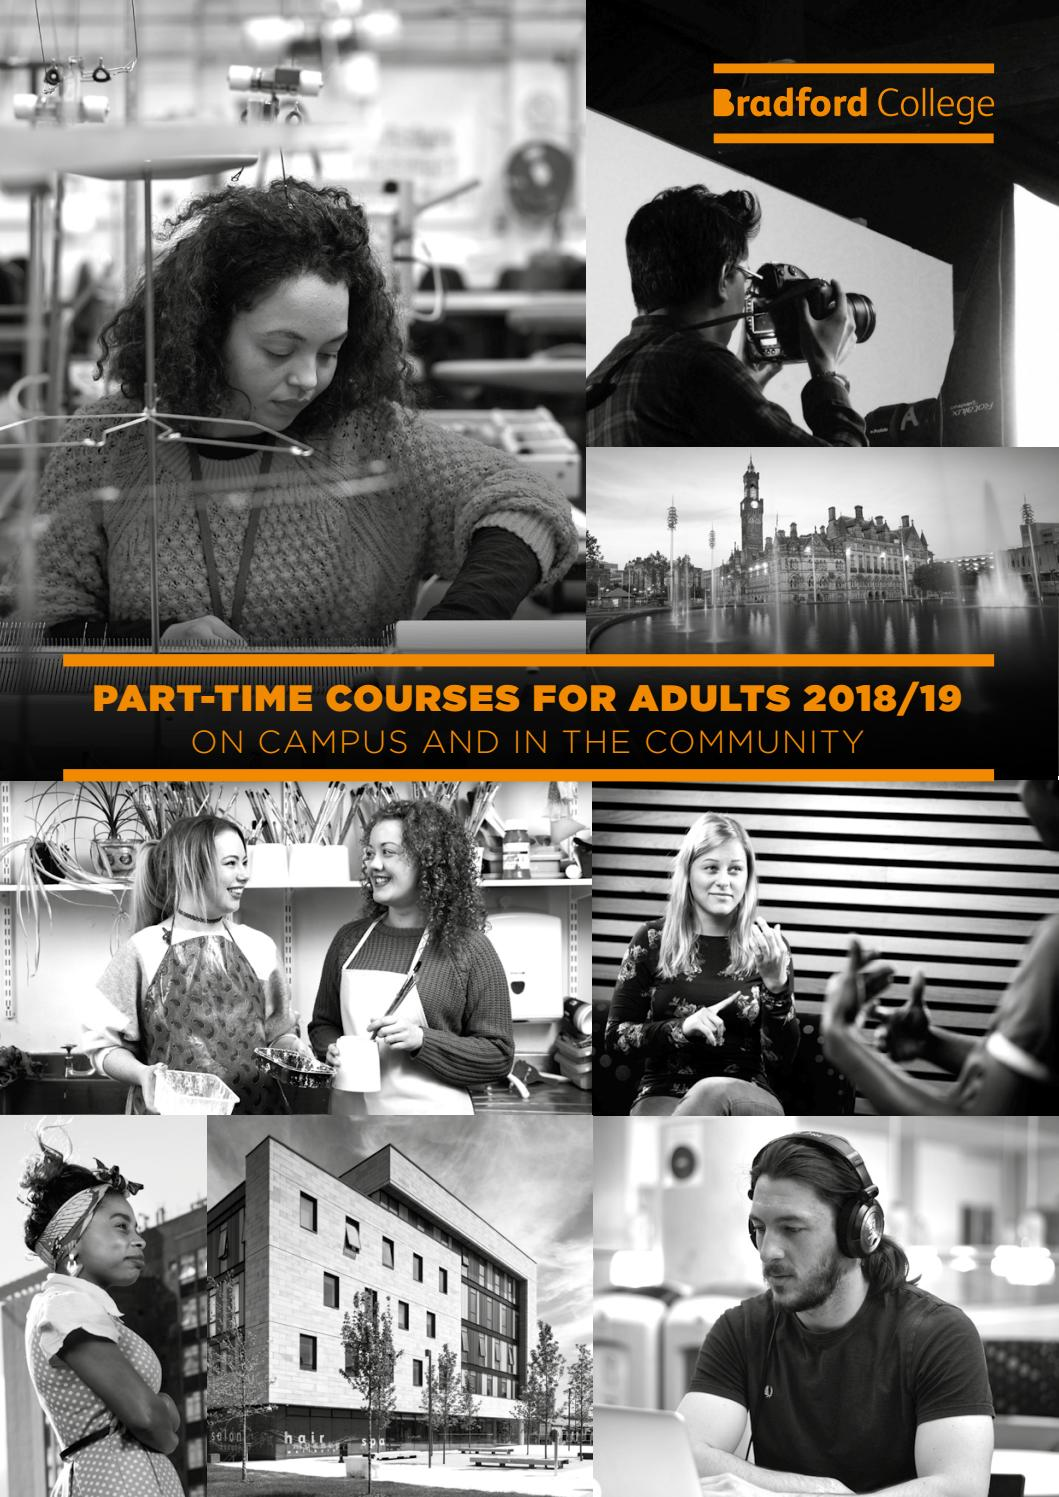 Bradford College part-time courses in the community for adults by Bradford College - issuu